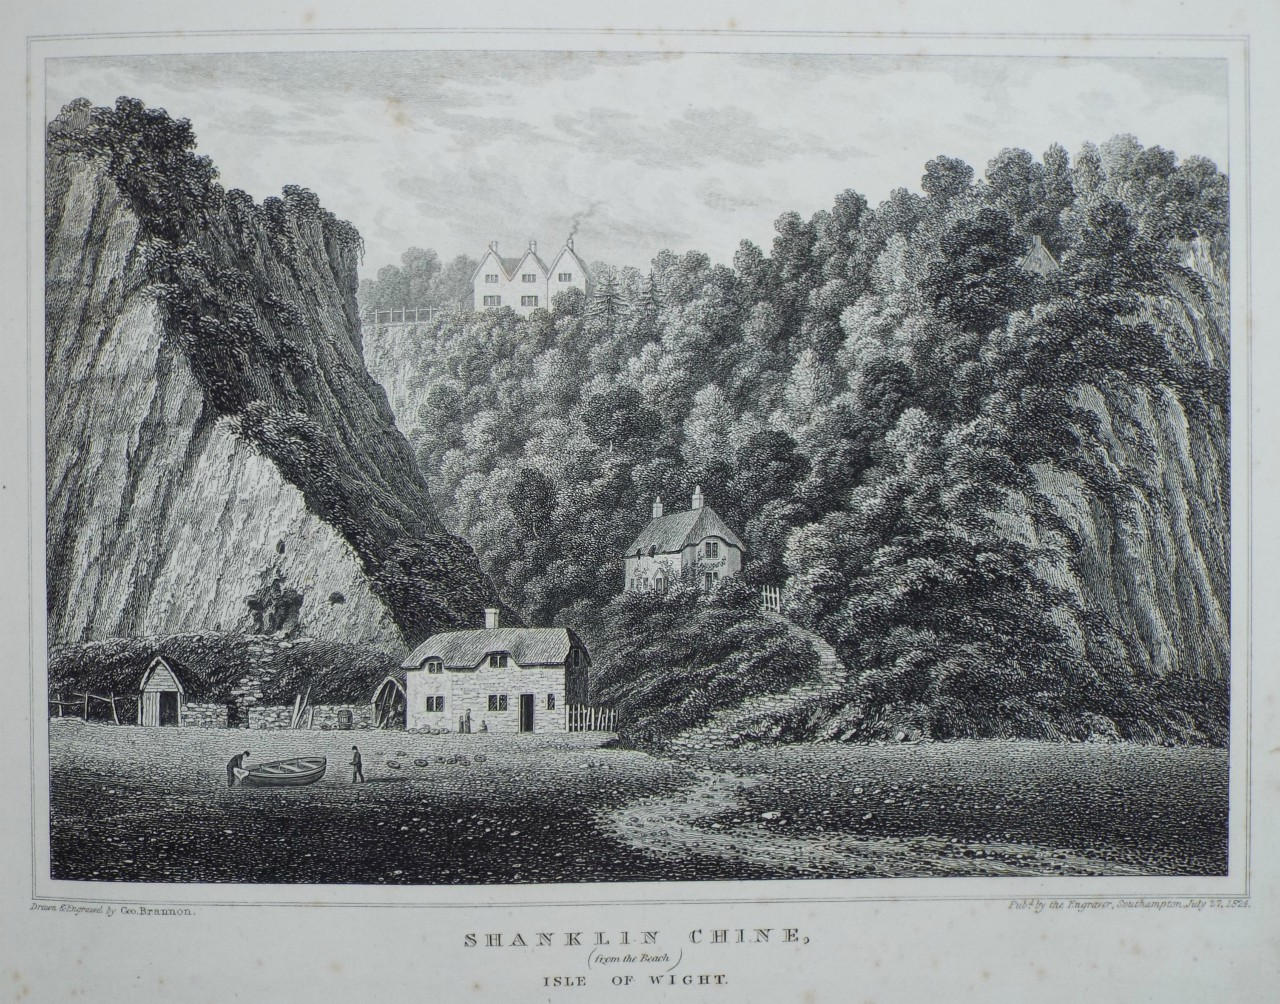 Shanklin Chine, 1824, by George Brannon. Click to enlarge.